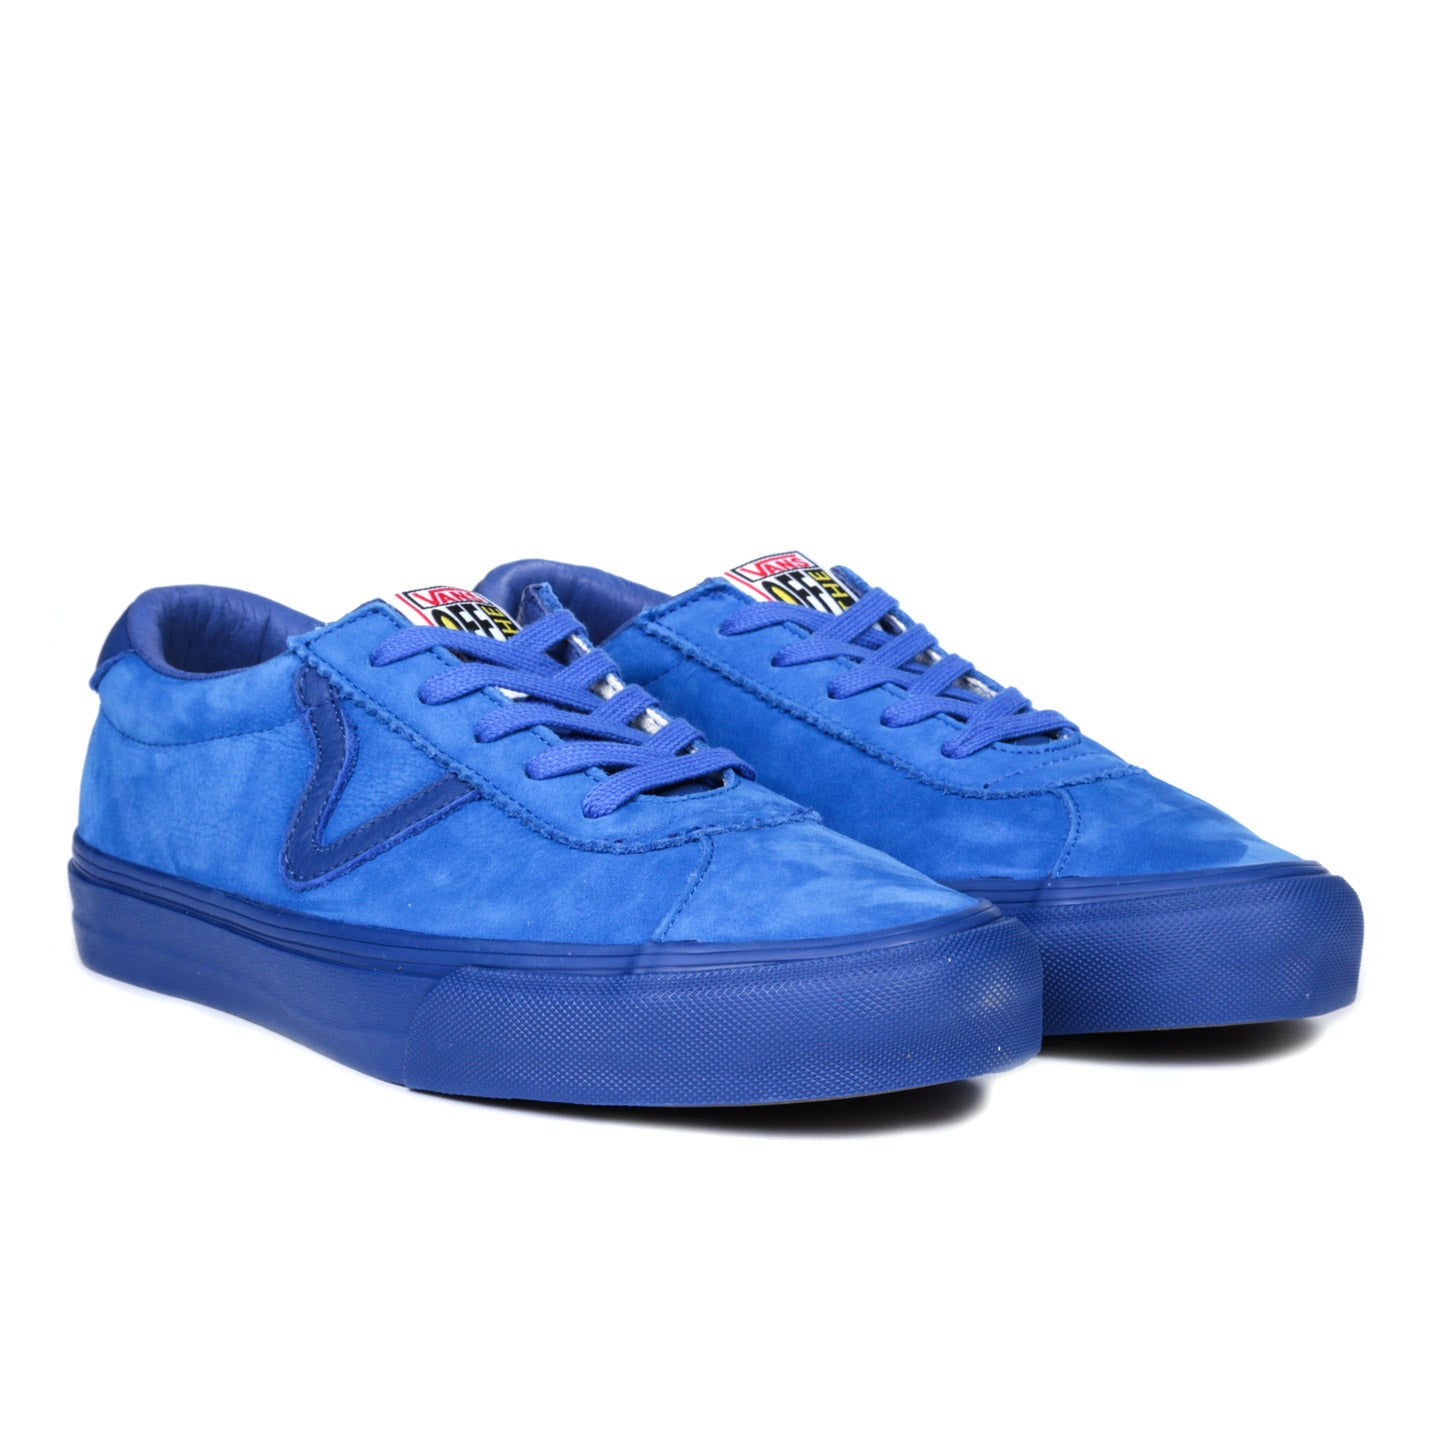 VAULT BY VANS EPOCH SPORT LX NAUTICAL BLUE